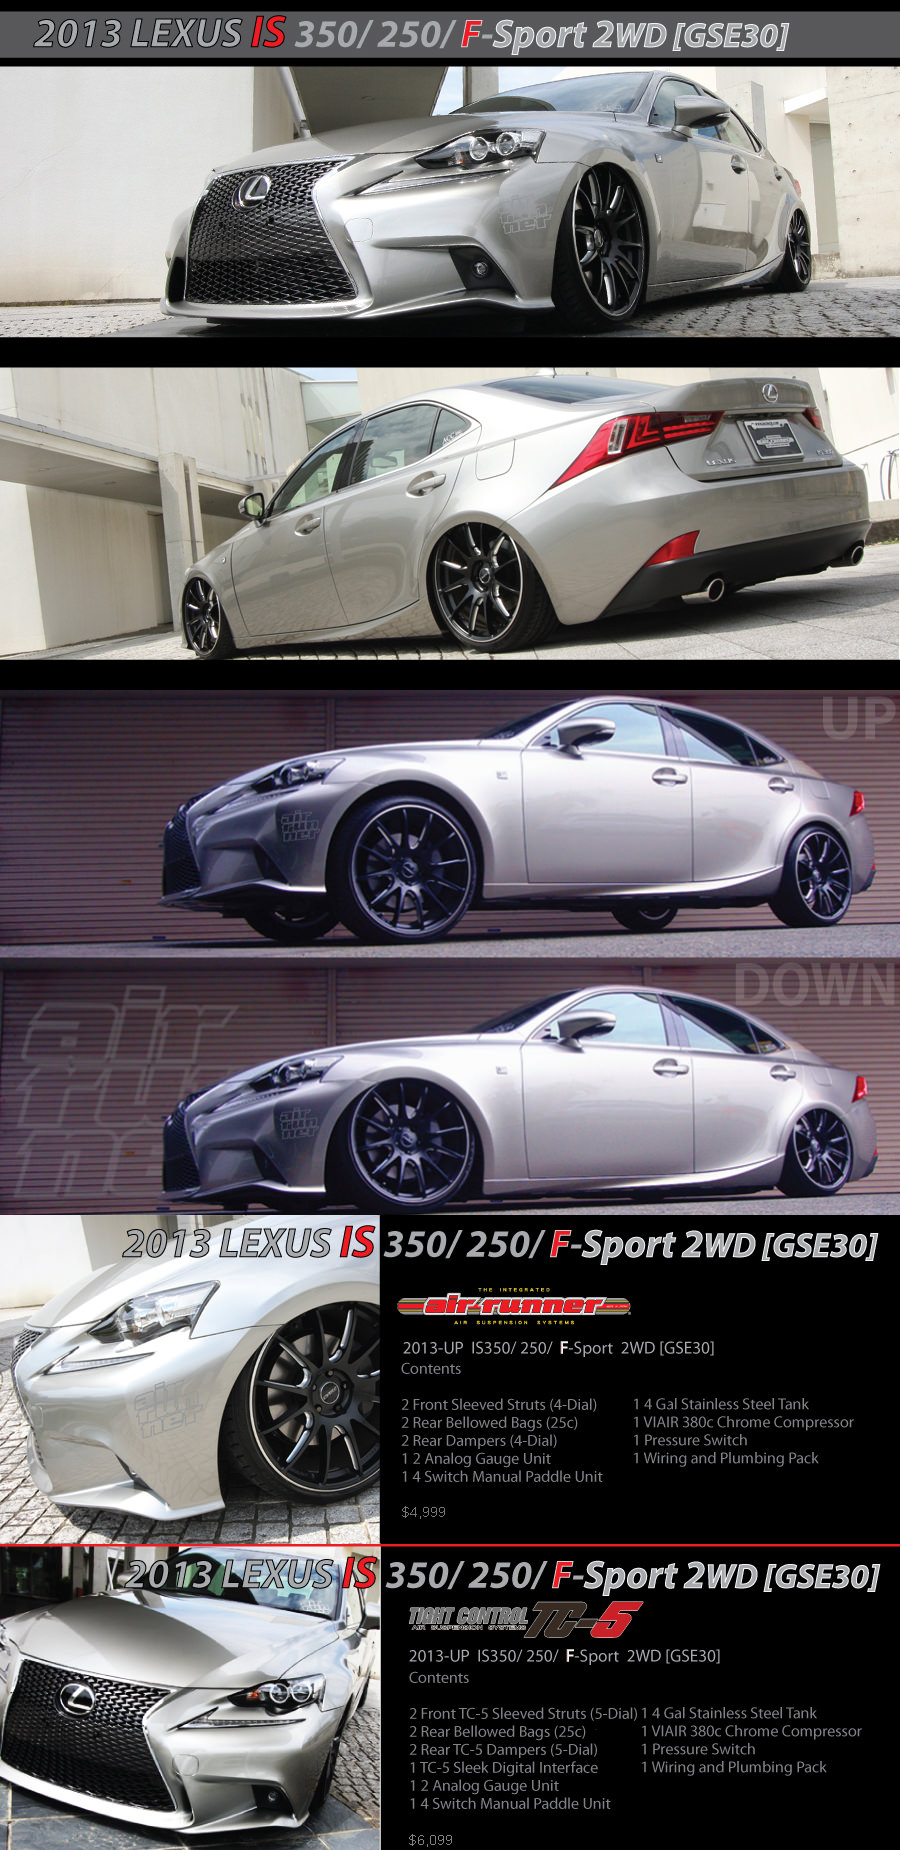 2013-up-Lexus-IS-350-250-F-Sport-AR-TC5-copy1_mini